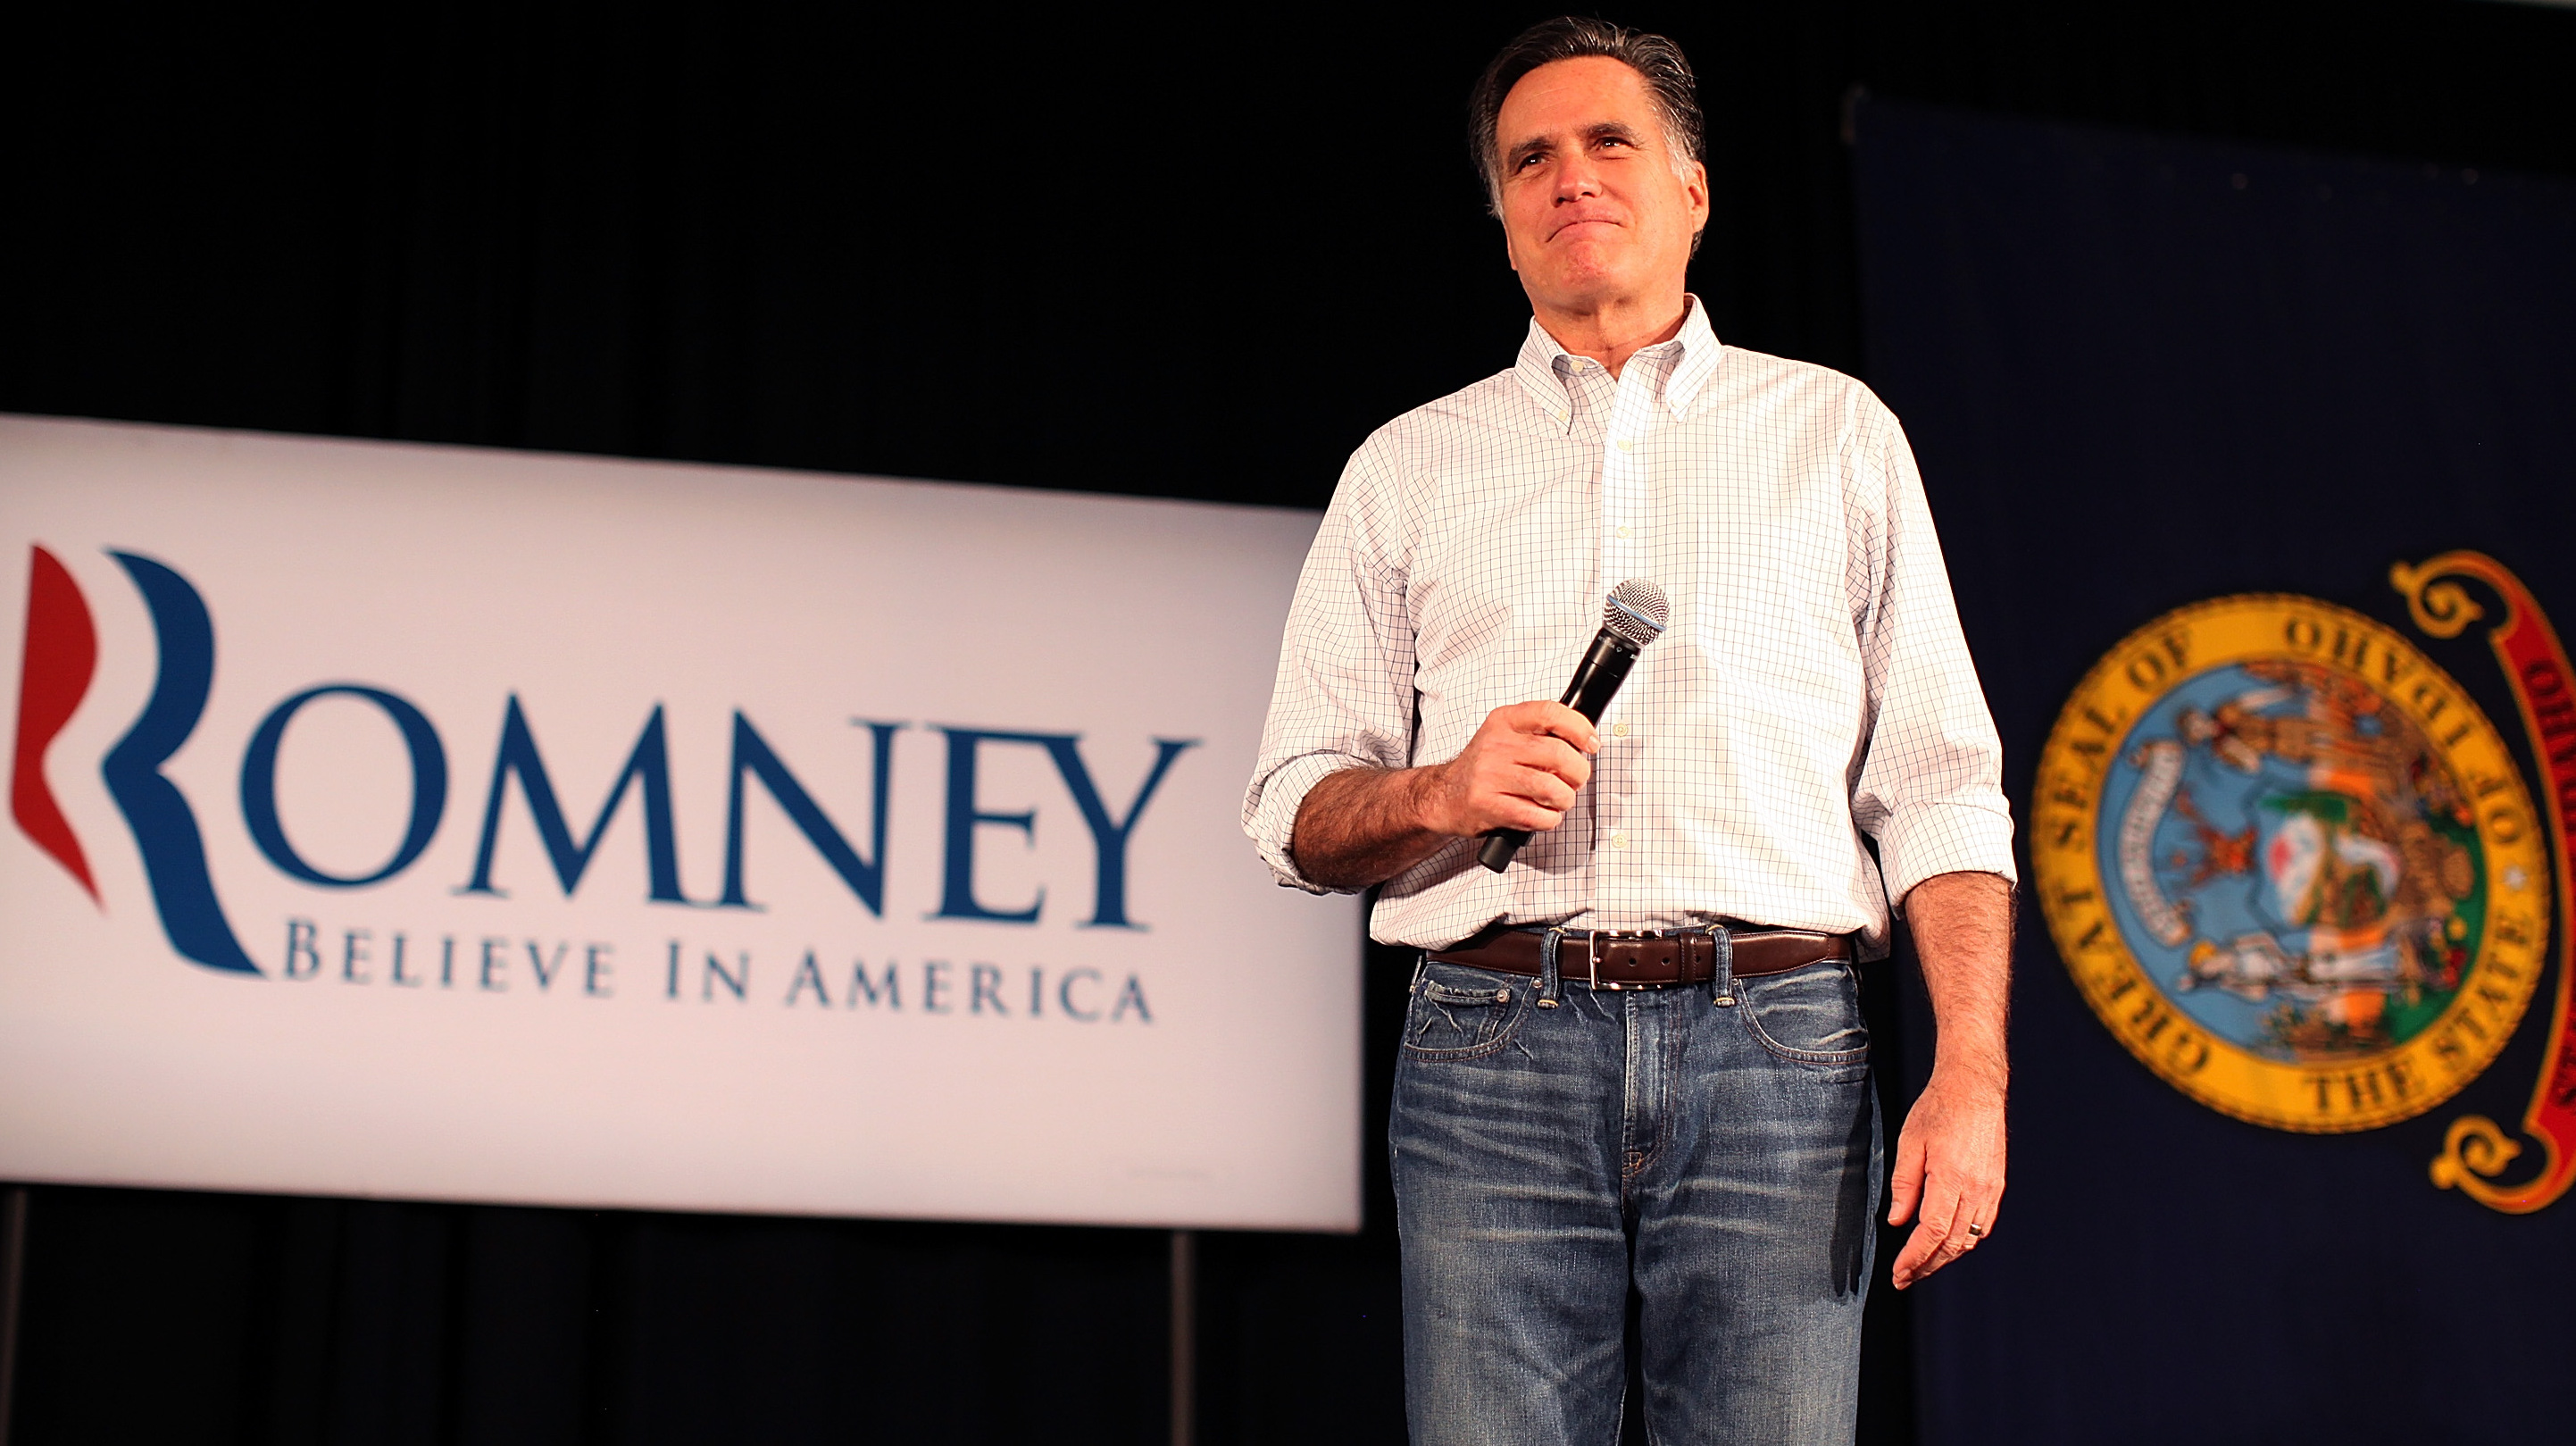 Romney touts ties to Washington in old video